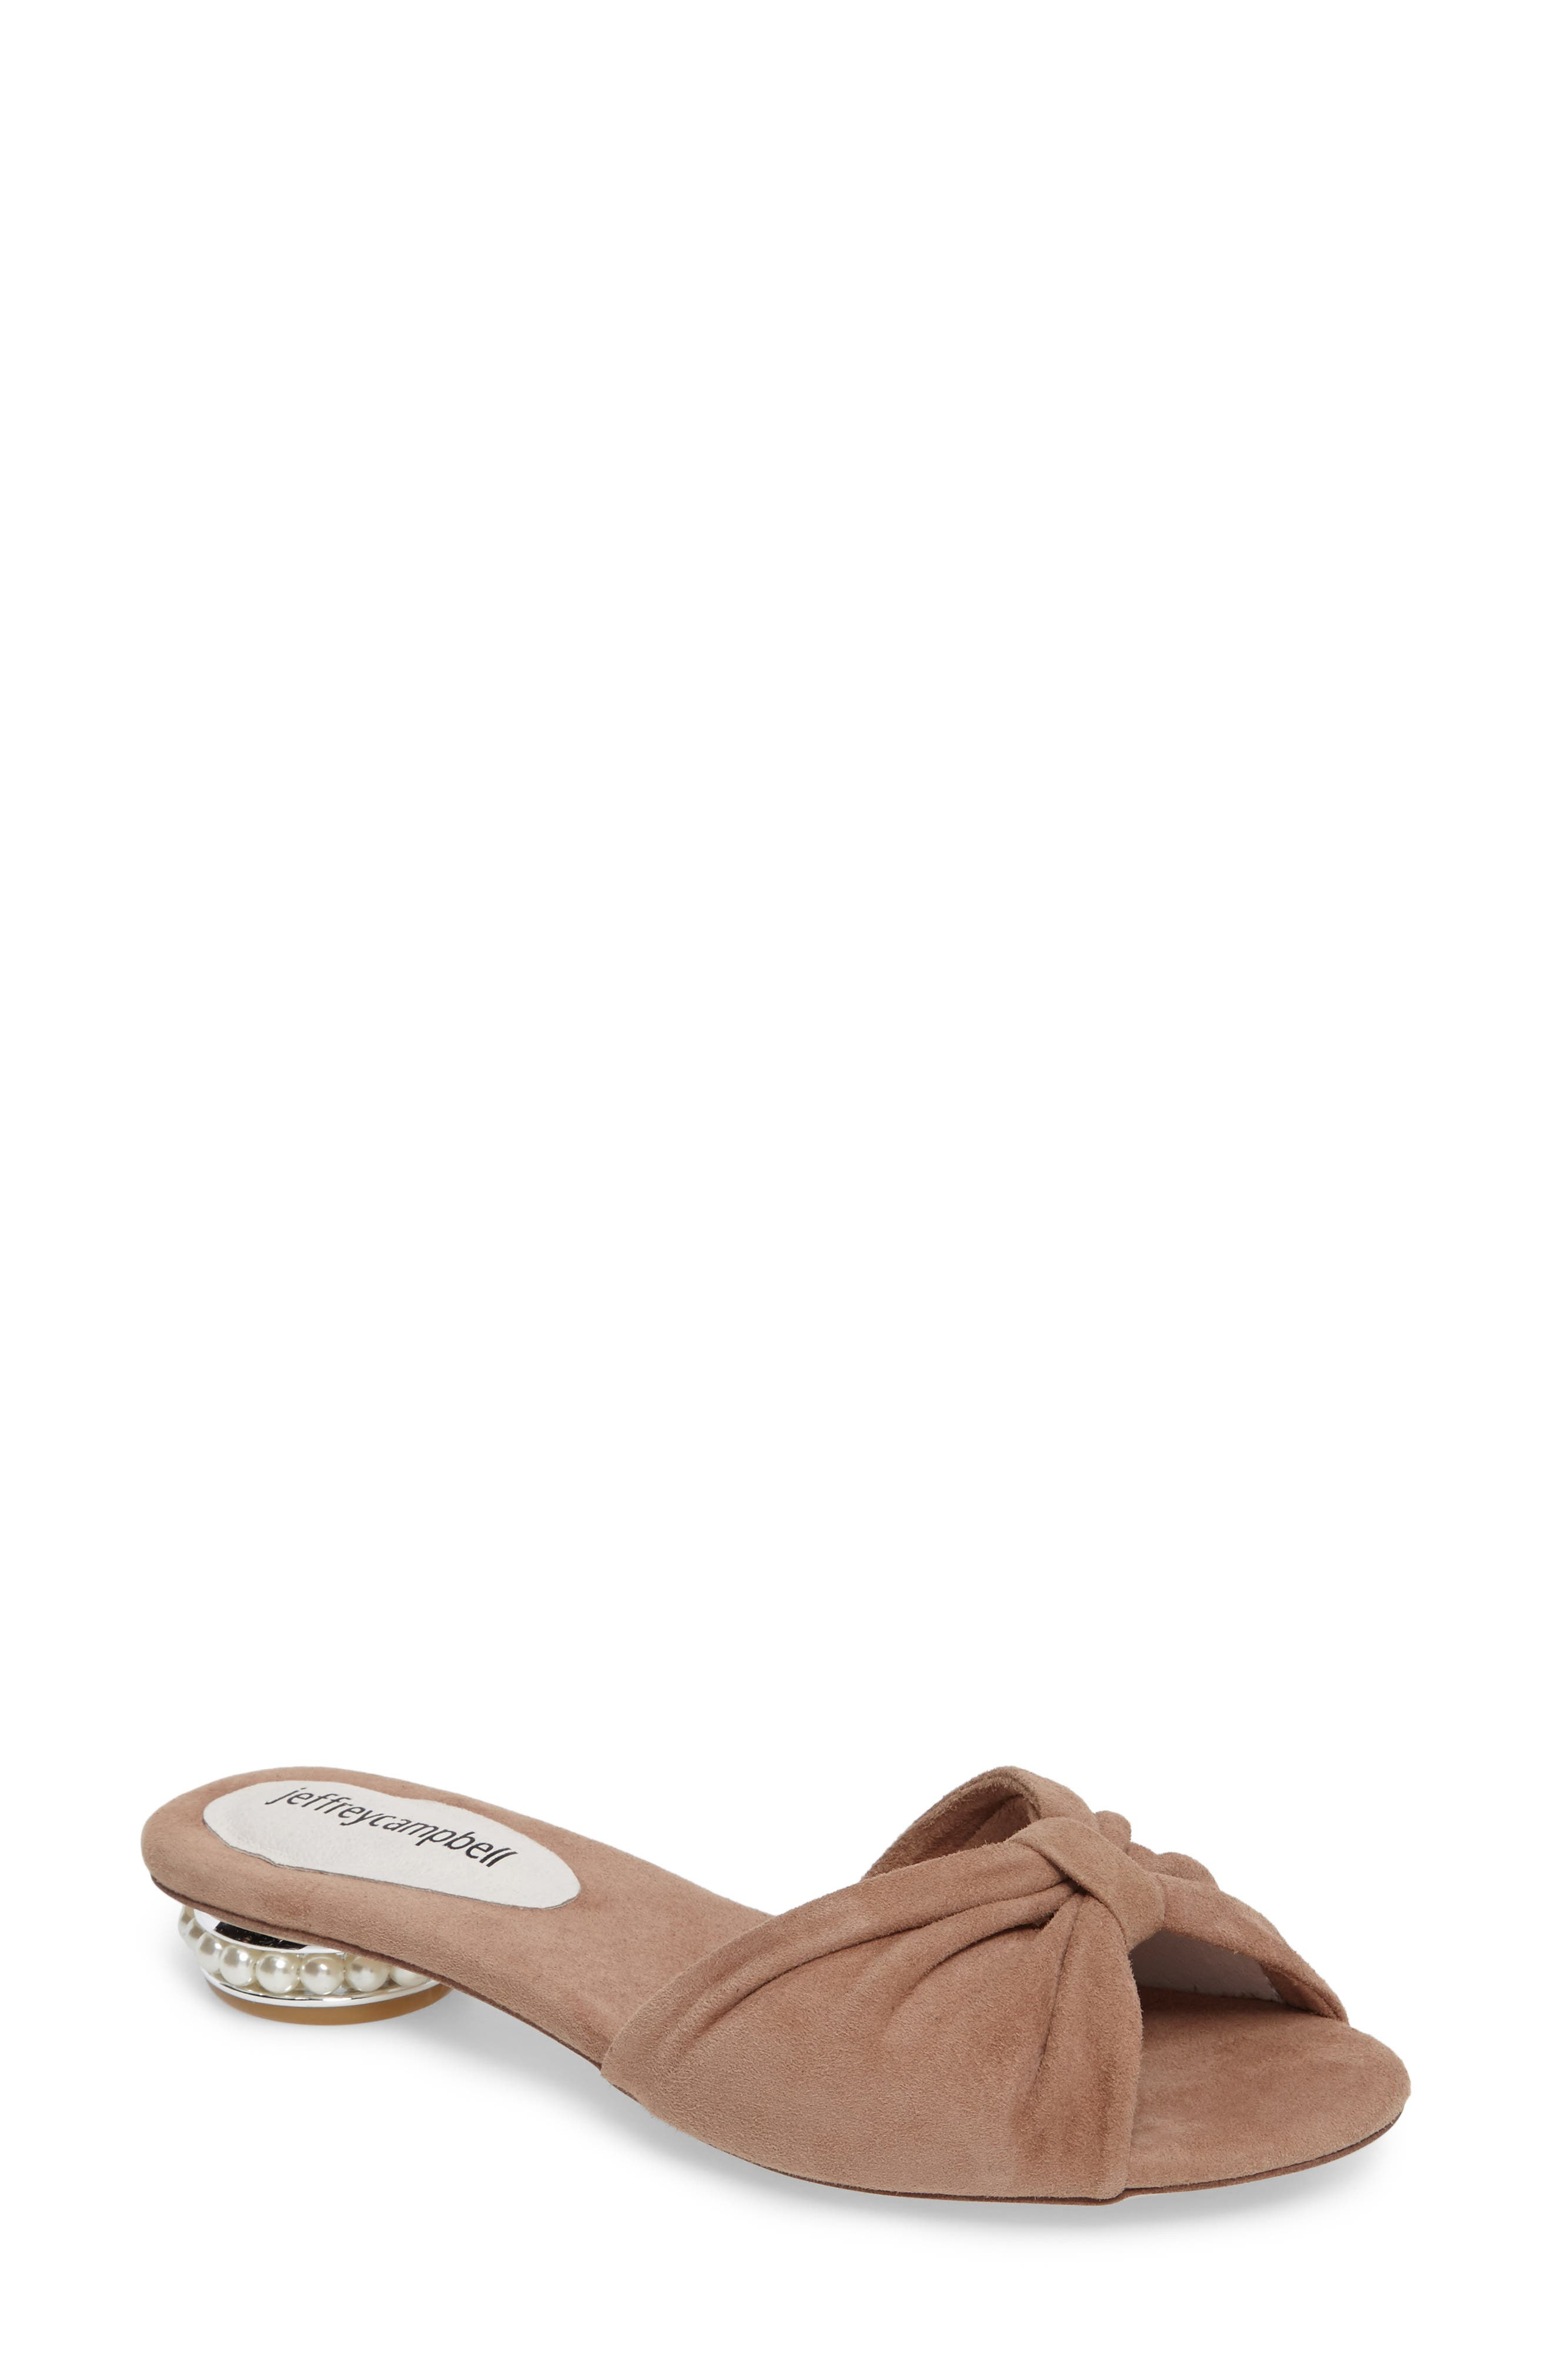 Jeffrey Campbell Turbina Embellished Slide Sandal (Women)